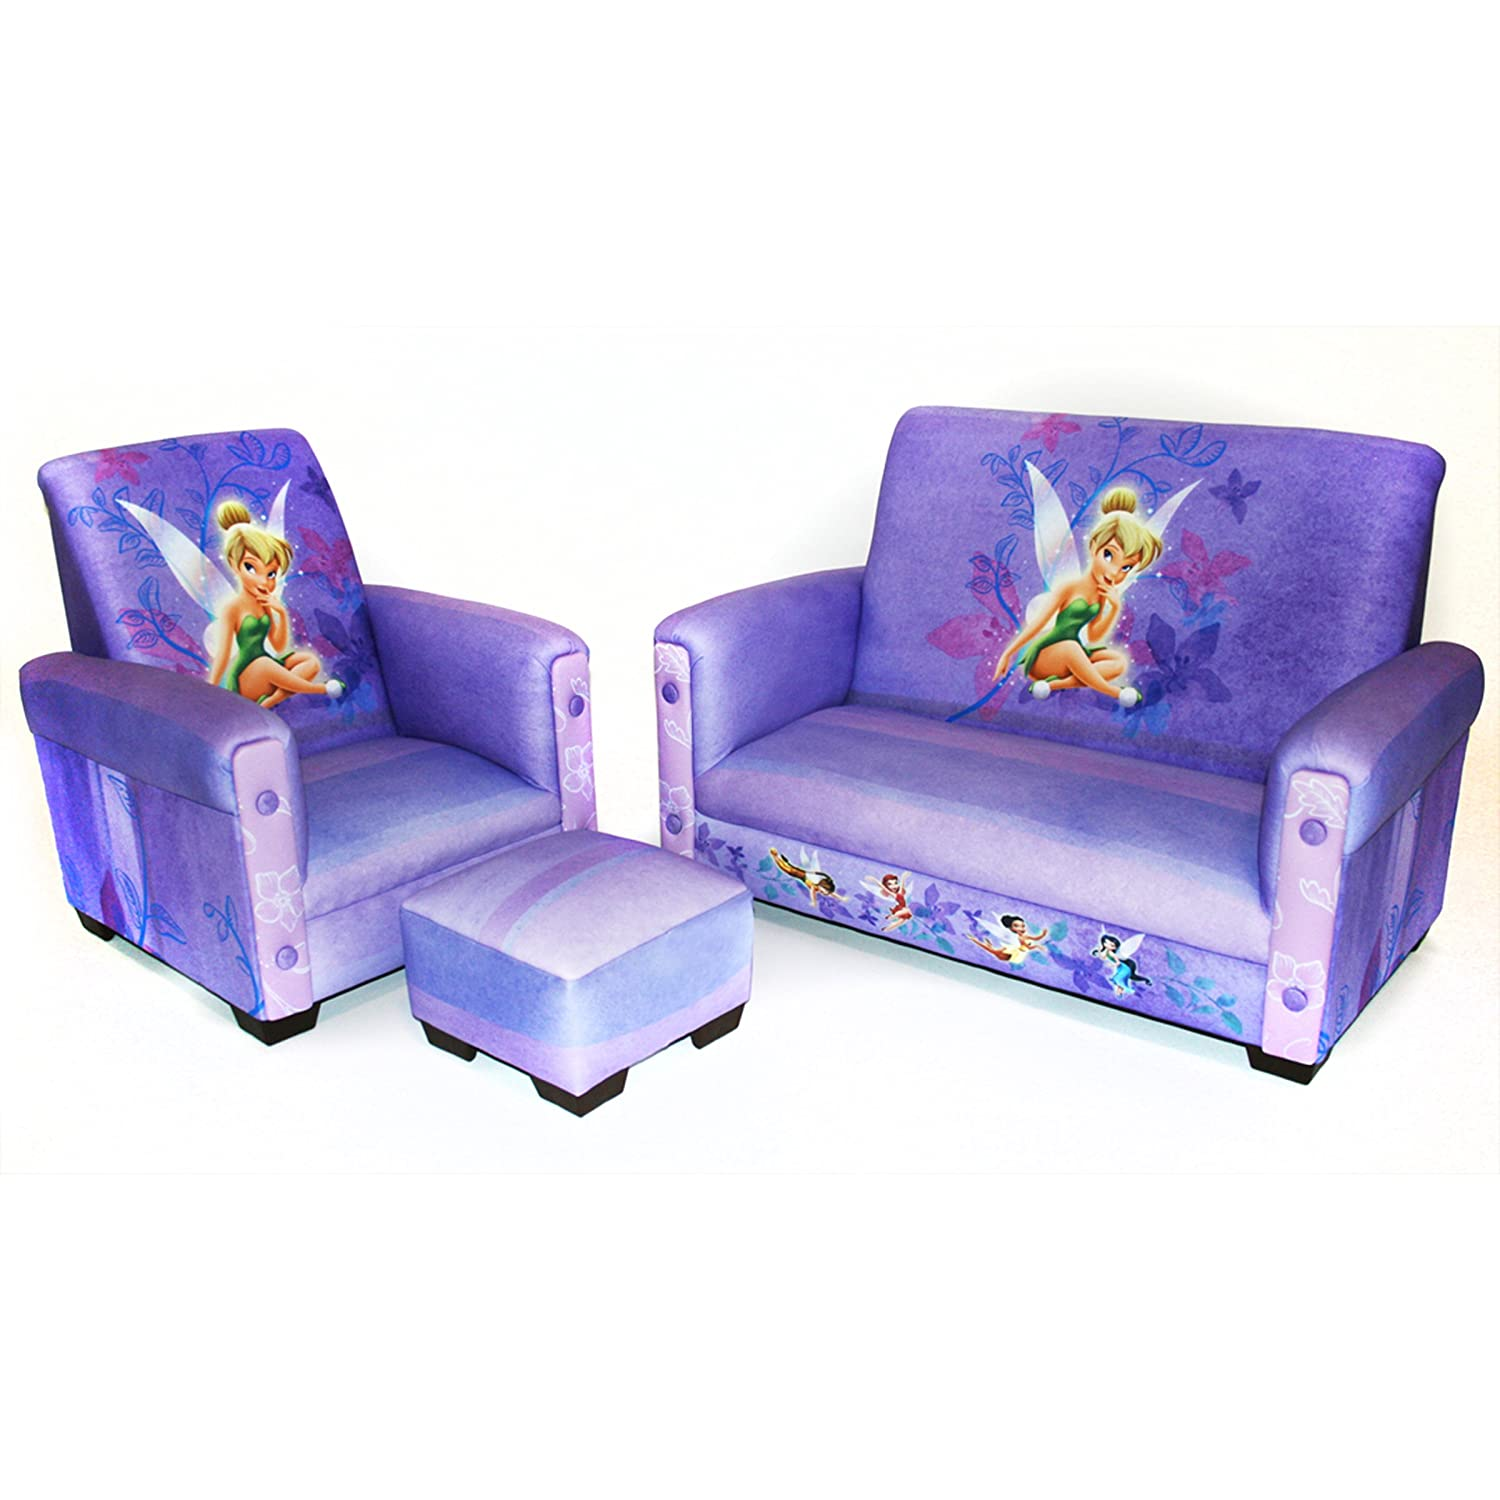 Amazon.com Disney Tinker Bell Fairies Toddler Sofa Chair And Ottoman Set Toys u0026 Games  sc 1 st  Amazon.com & Amazon.com: Disney Tinker Bell Fairies Toddler Sofa Chair And ...